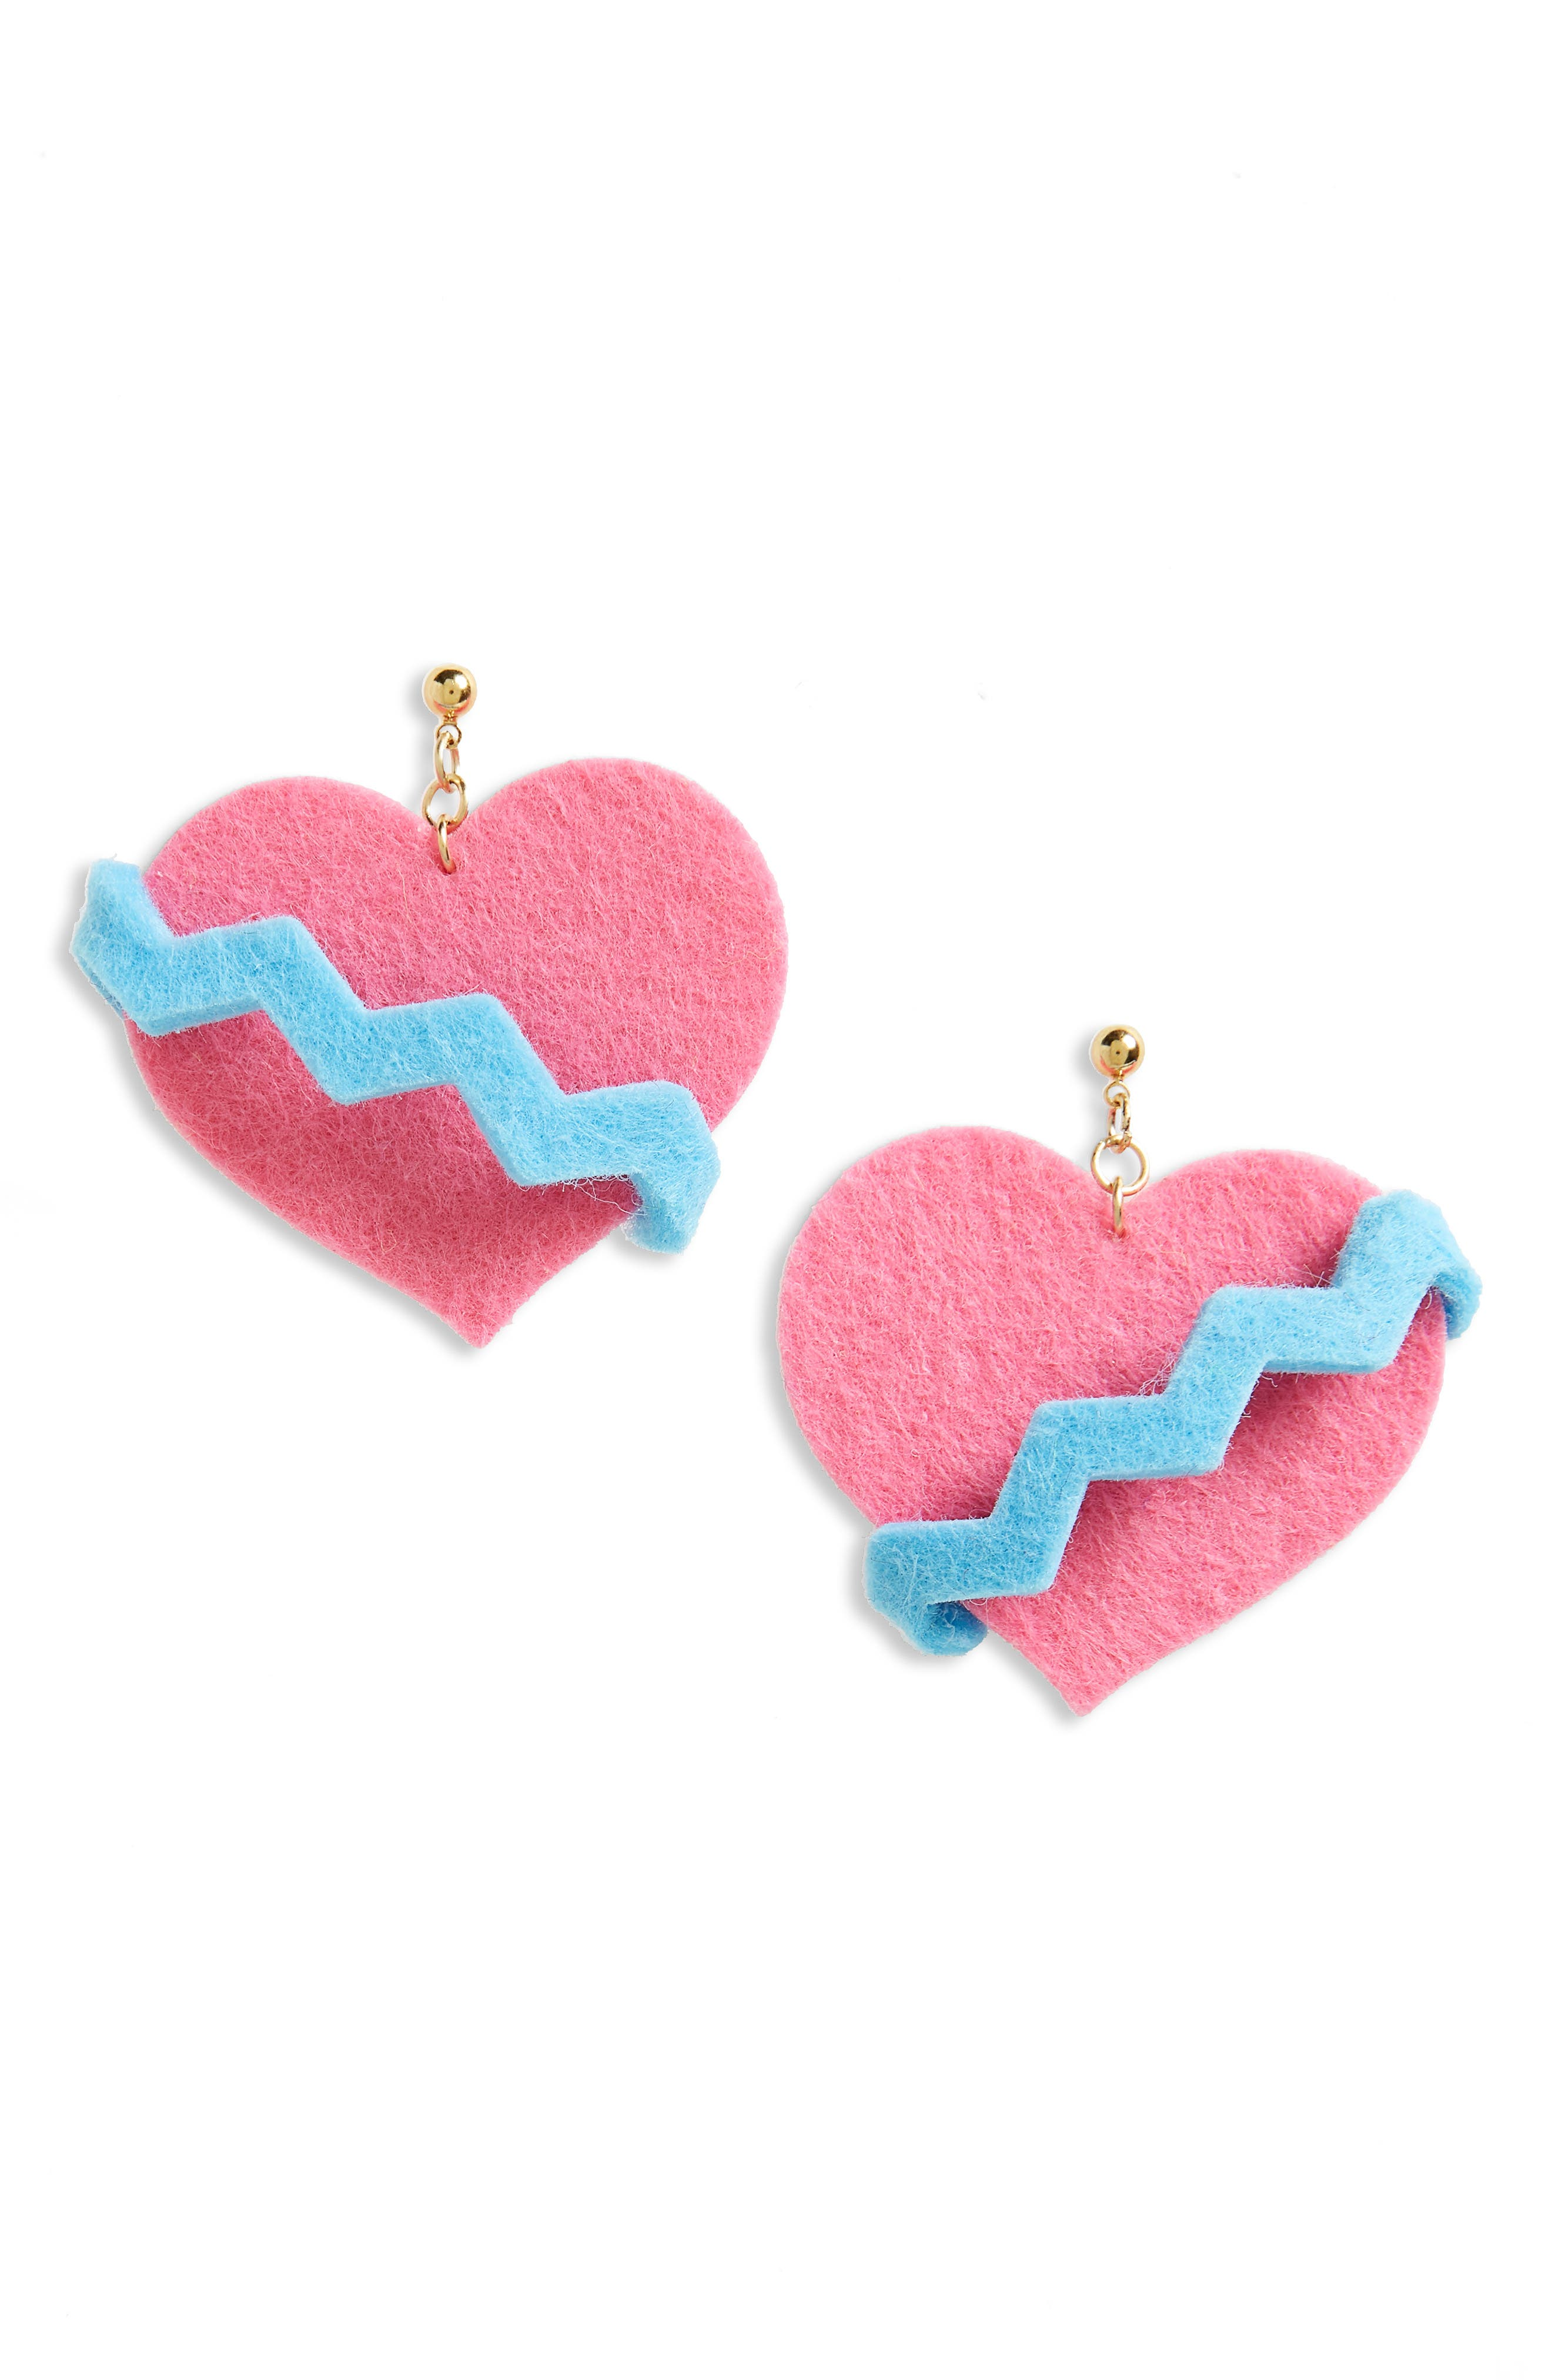 Heart Earrings,                         Main,                         color, Pink